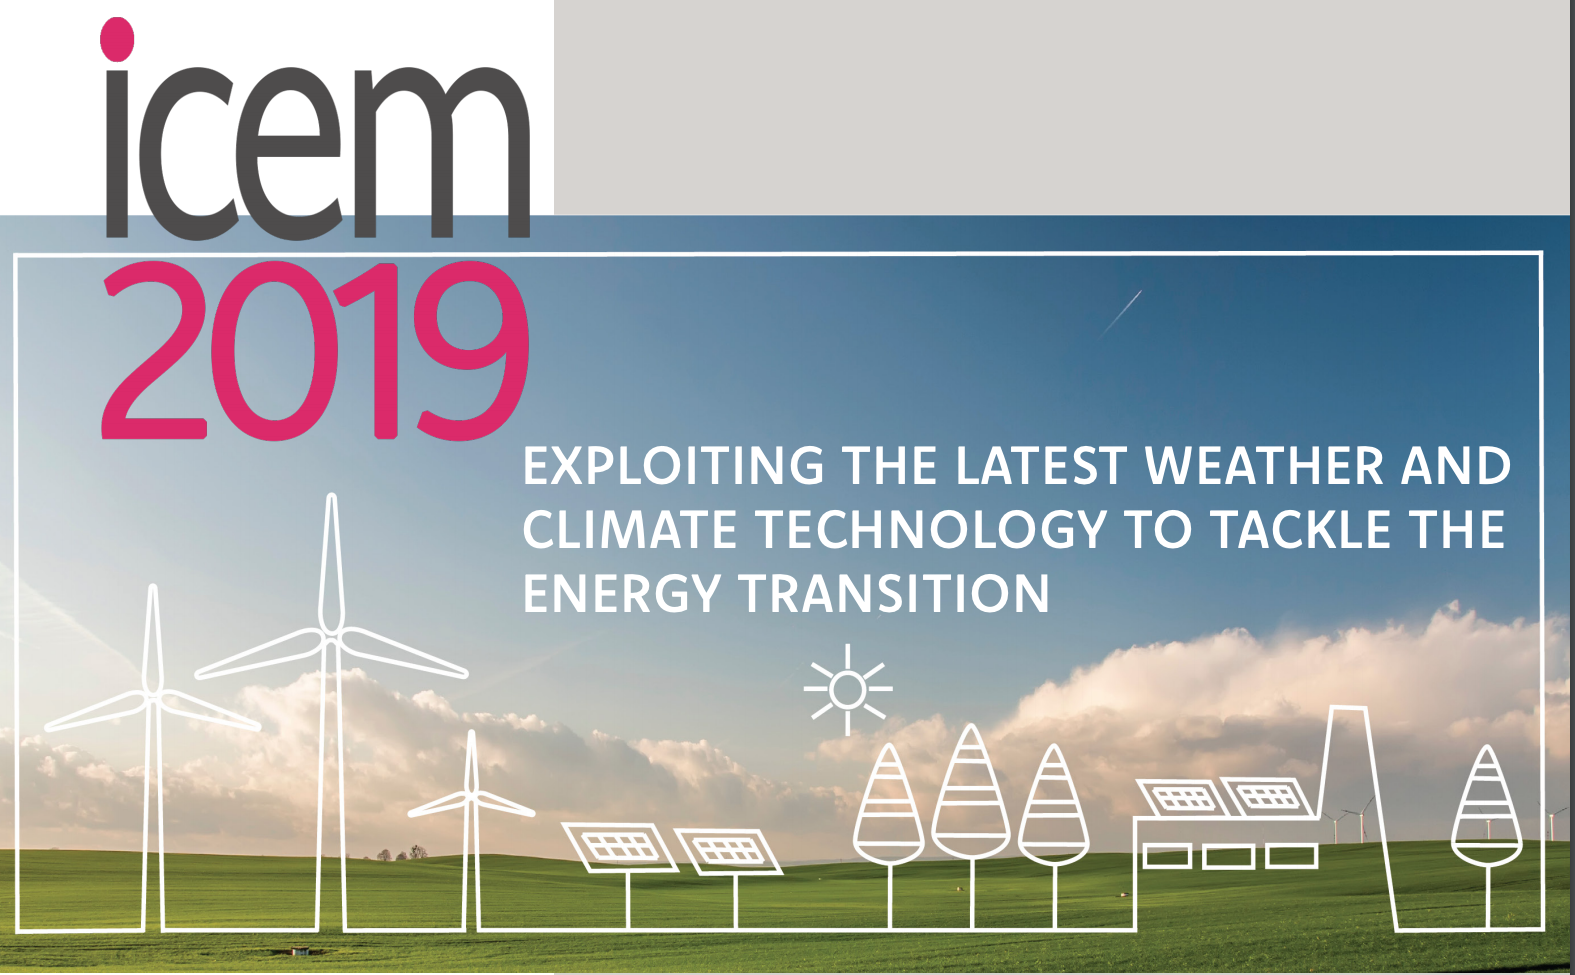 Climate-fit.city at the 6th International Conference on Energy & Meteorology